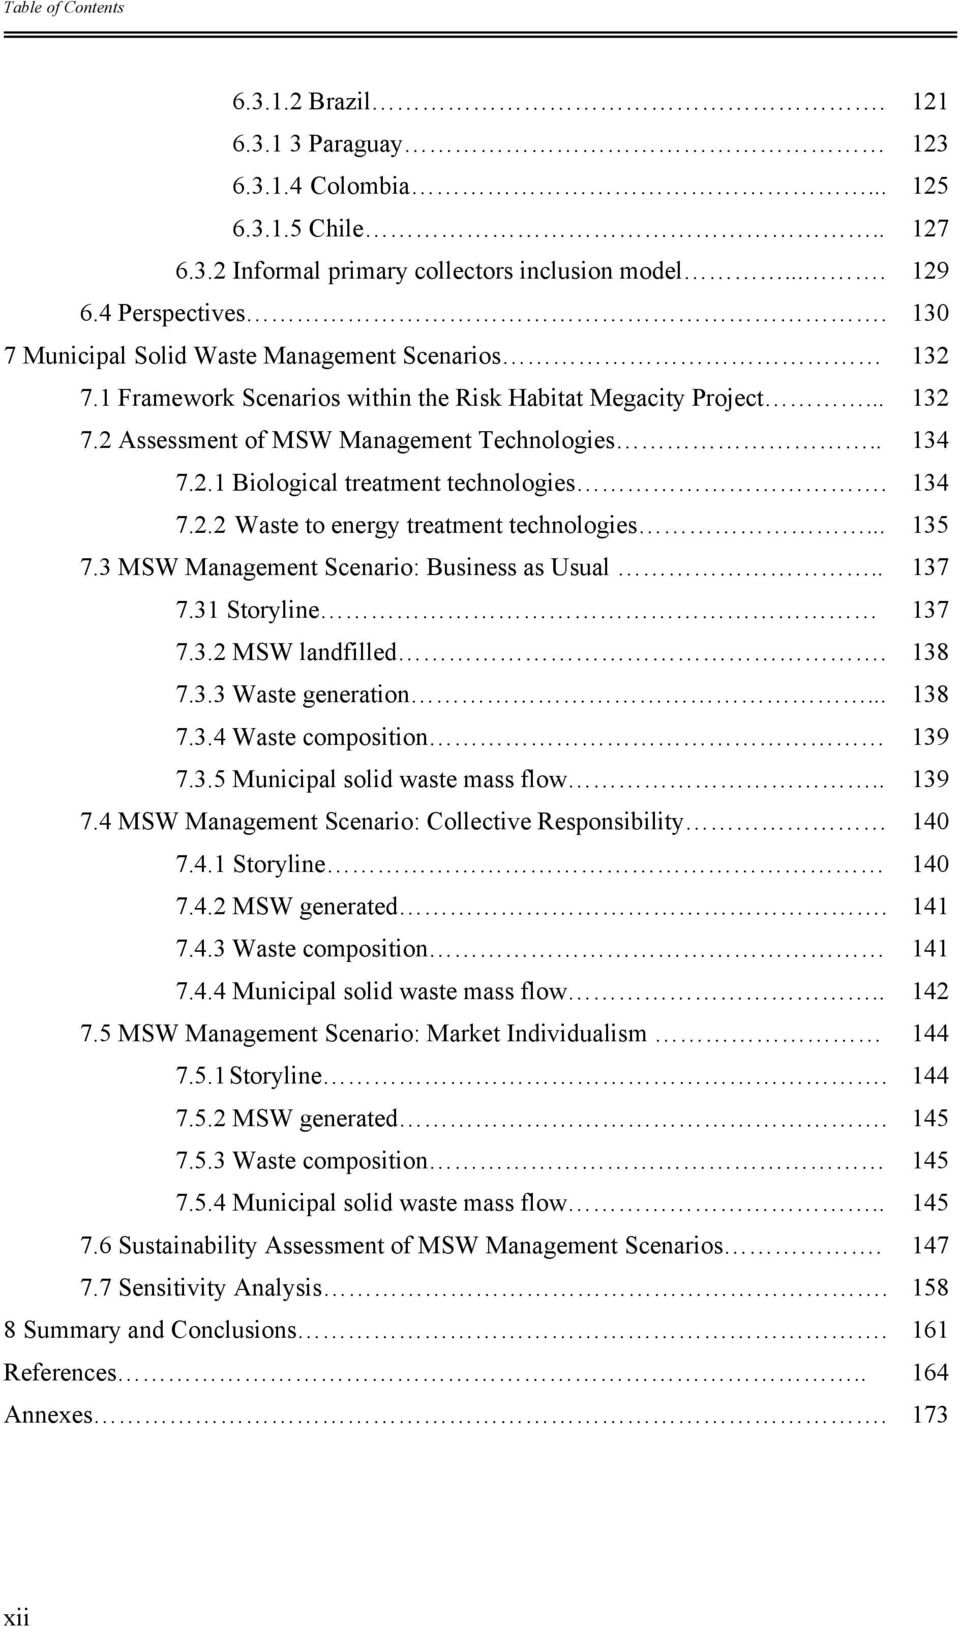 134 7.2.2 Waste to energy treatment technologies... 135 7.3 MSW Management Scenario: Business as Usual.. 137 7.31 Storyline 137 7.3.2 MSW landfilled. 138 7.3.3 Waste generation... 138 7.3.4 Waste composition 139 7.